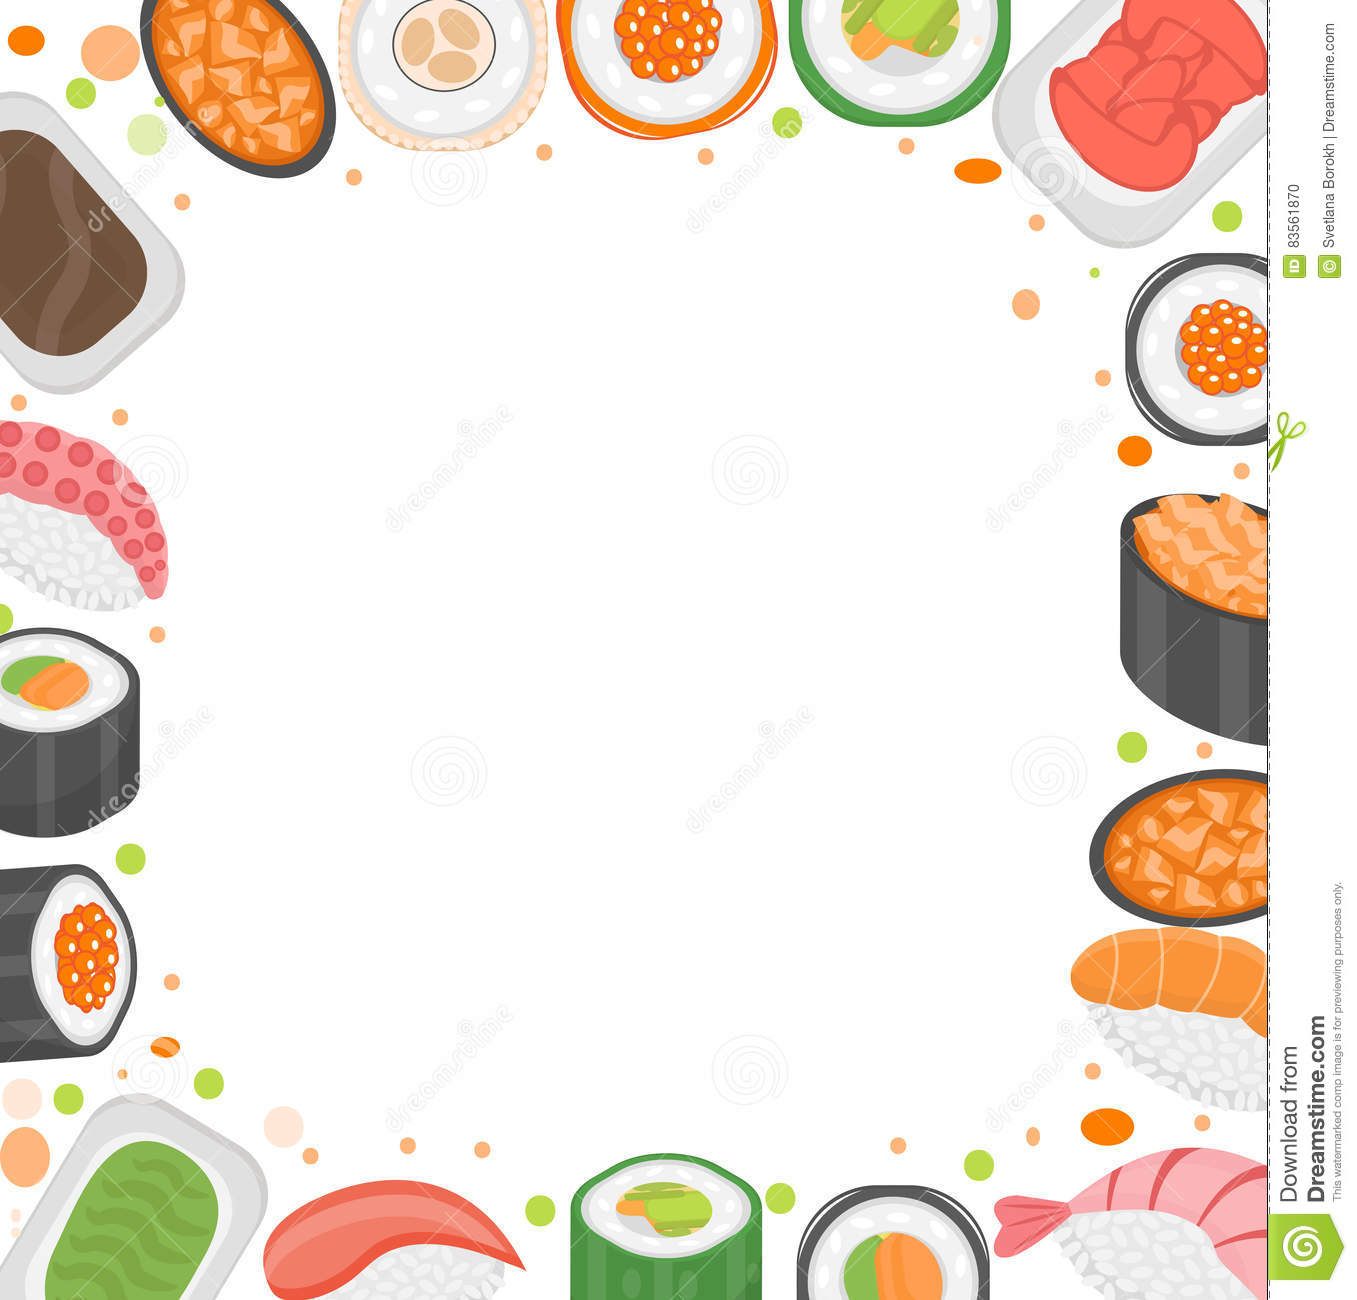 Cliparts Küche Gratis Sushi Frame Template With Space For Text Japanese Cuisine